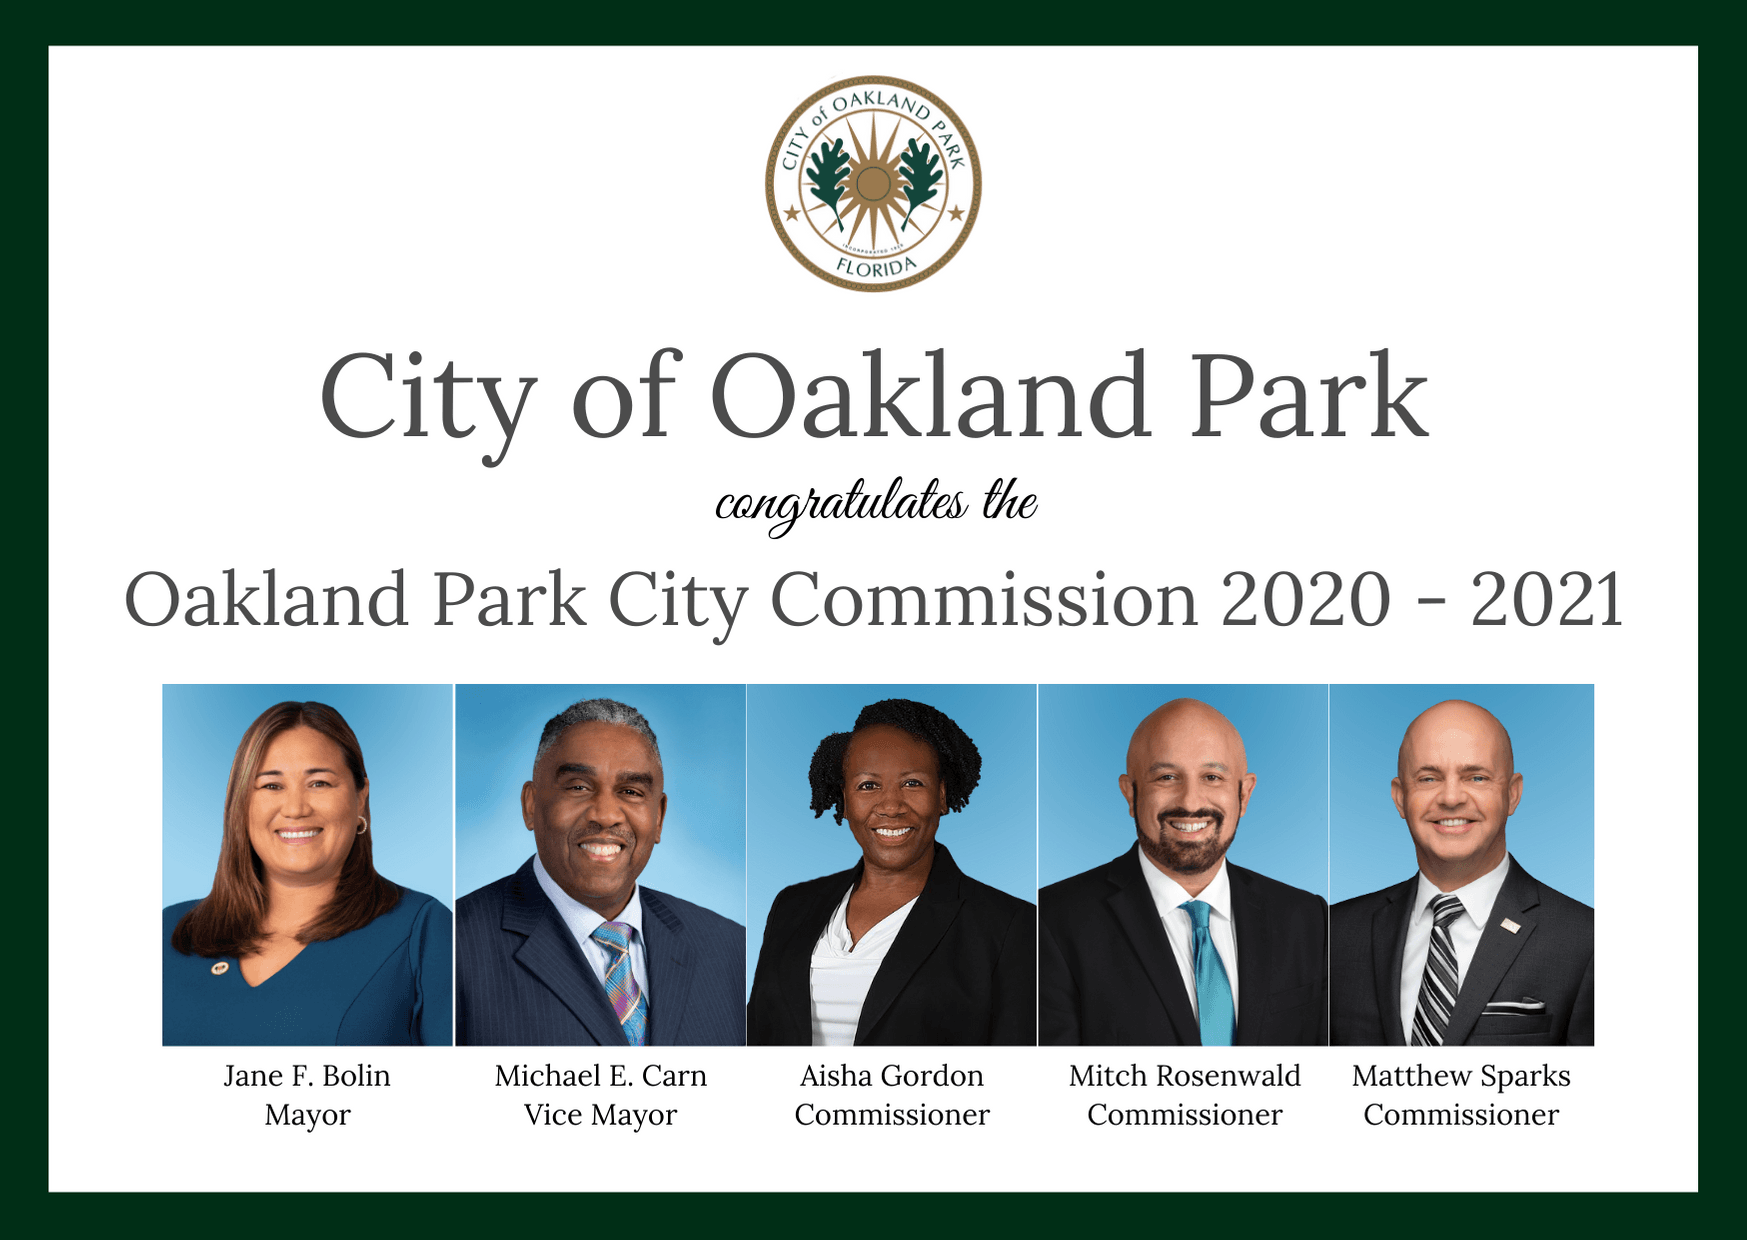 Oakland Park City Commission Congratulations